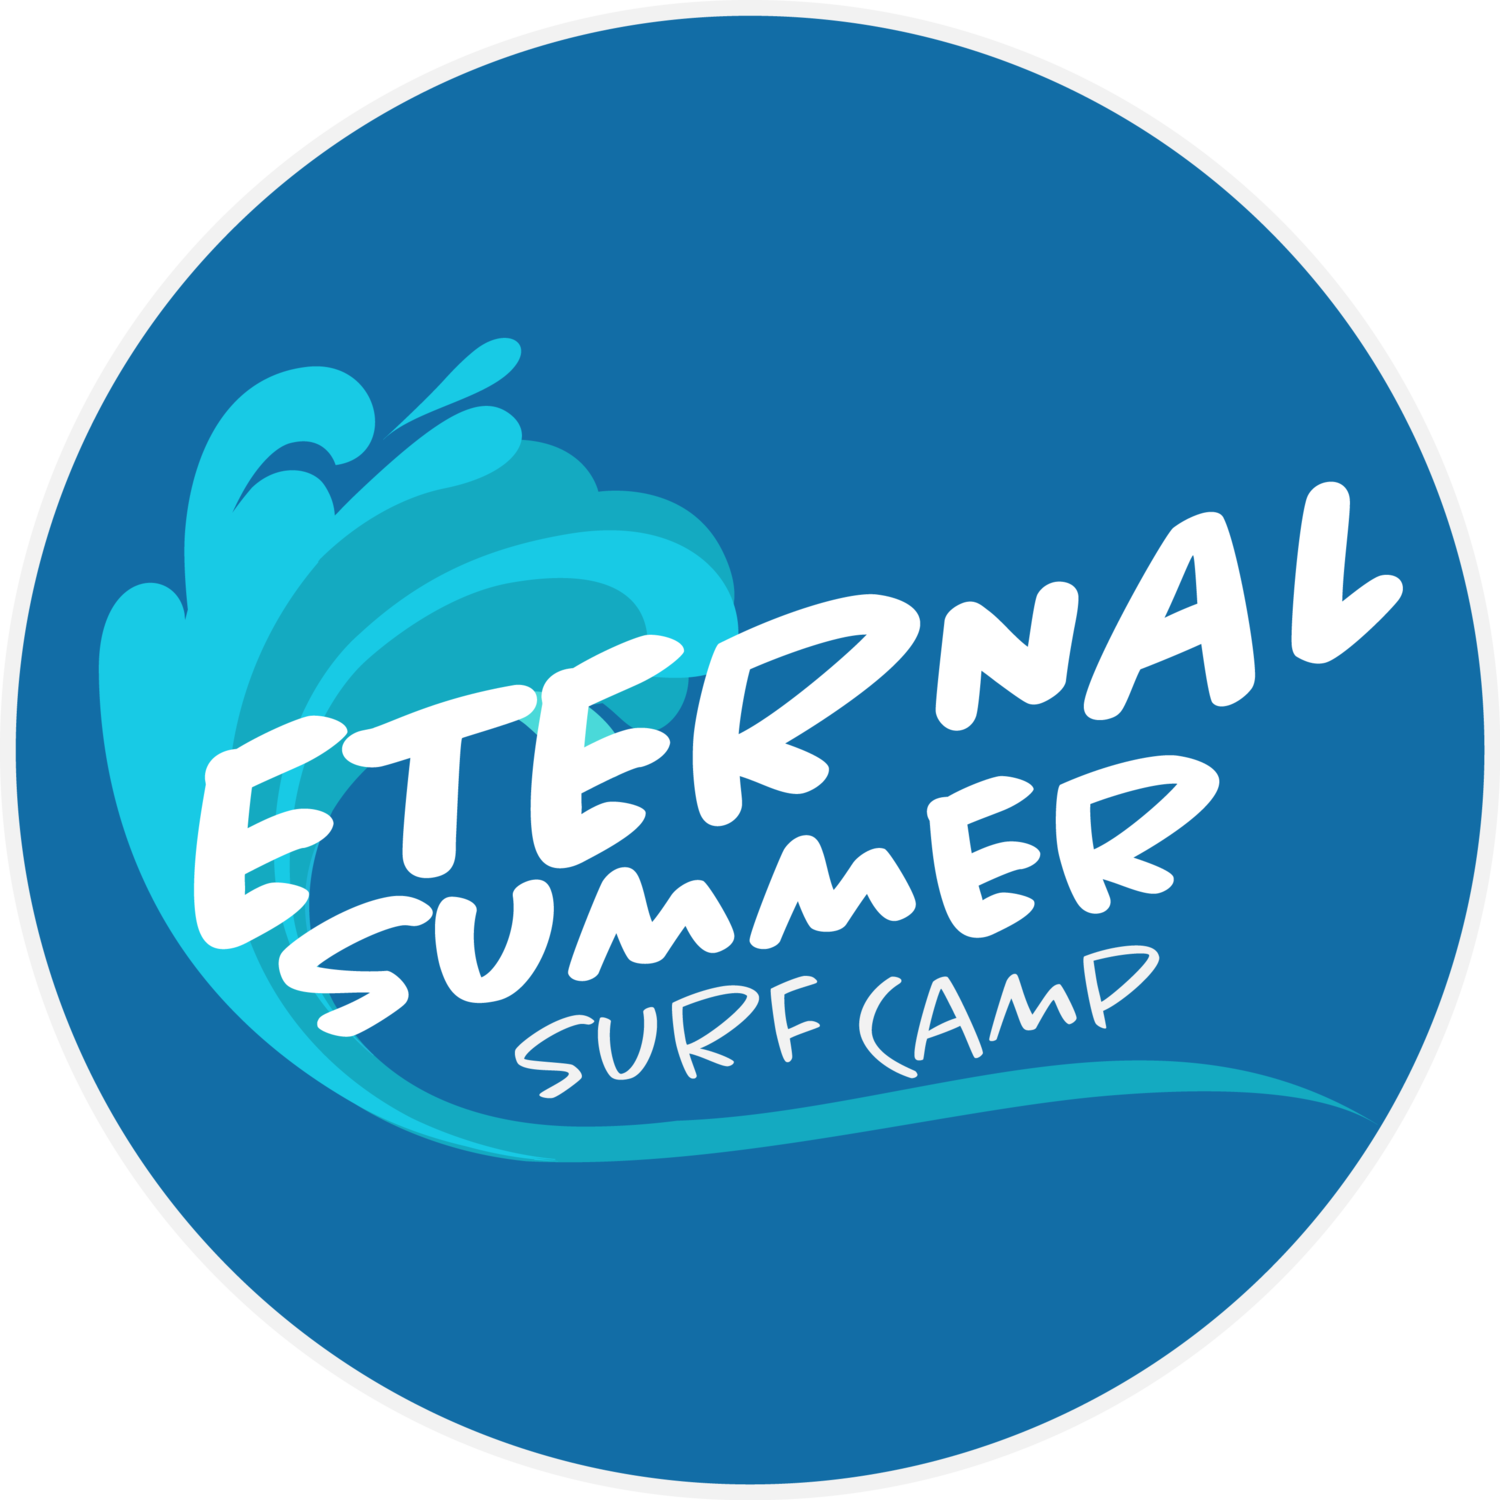 Eternal Summer Surf Camp